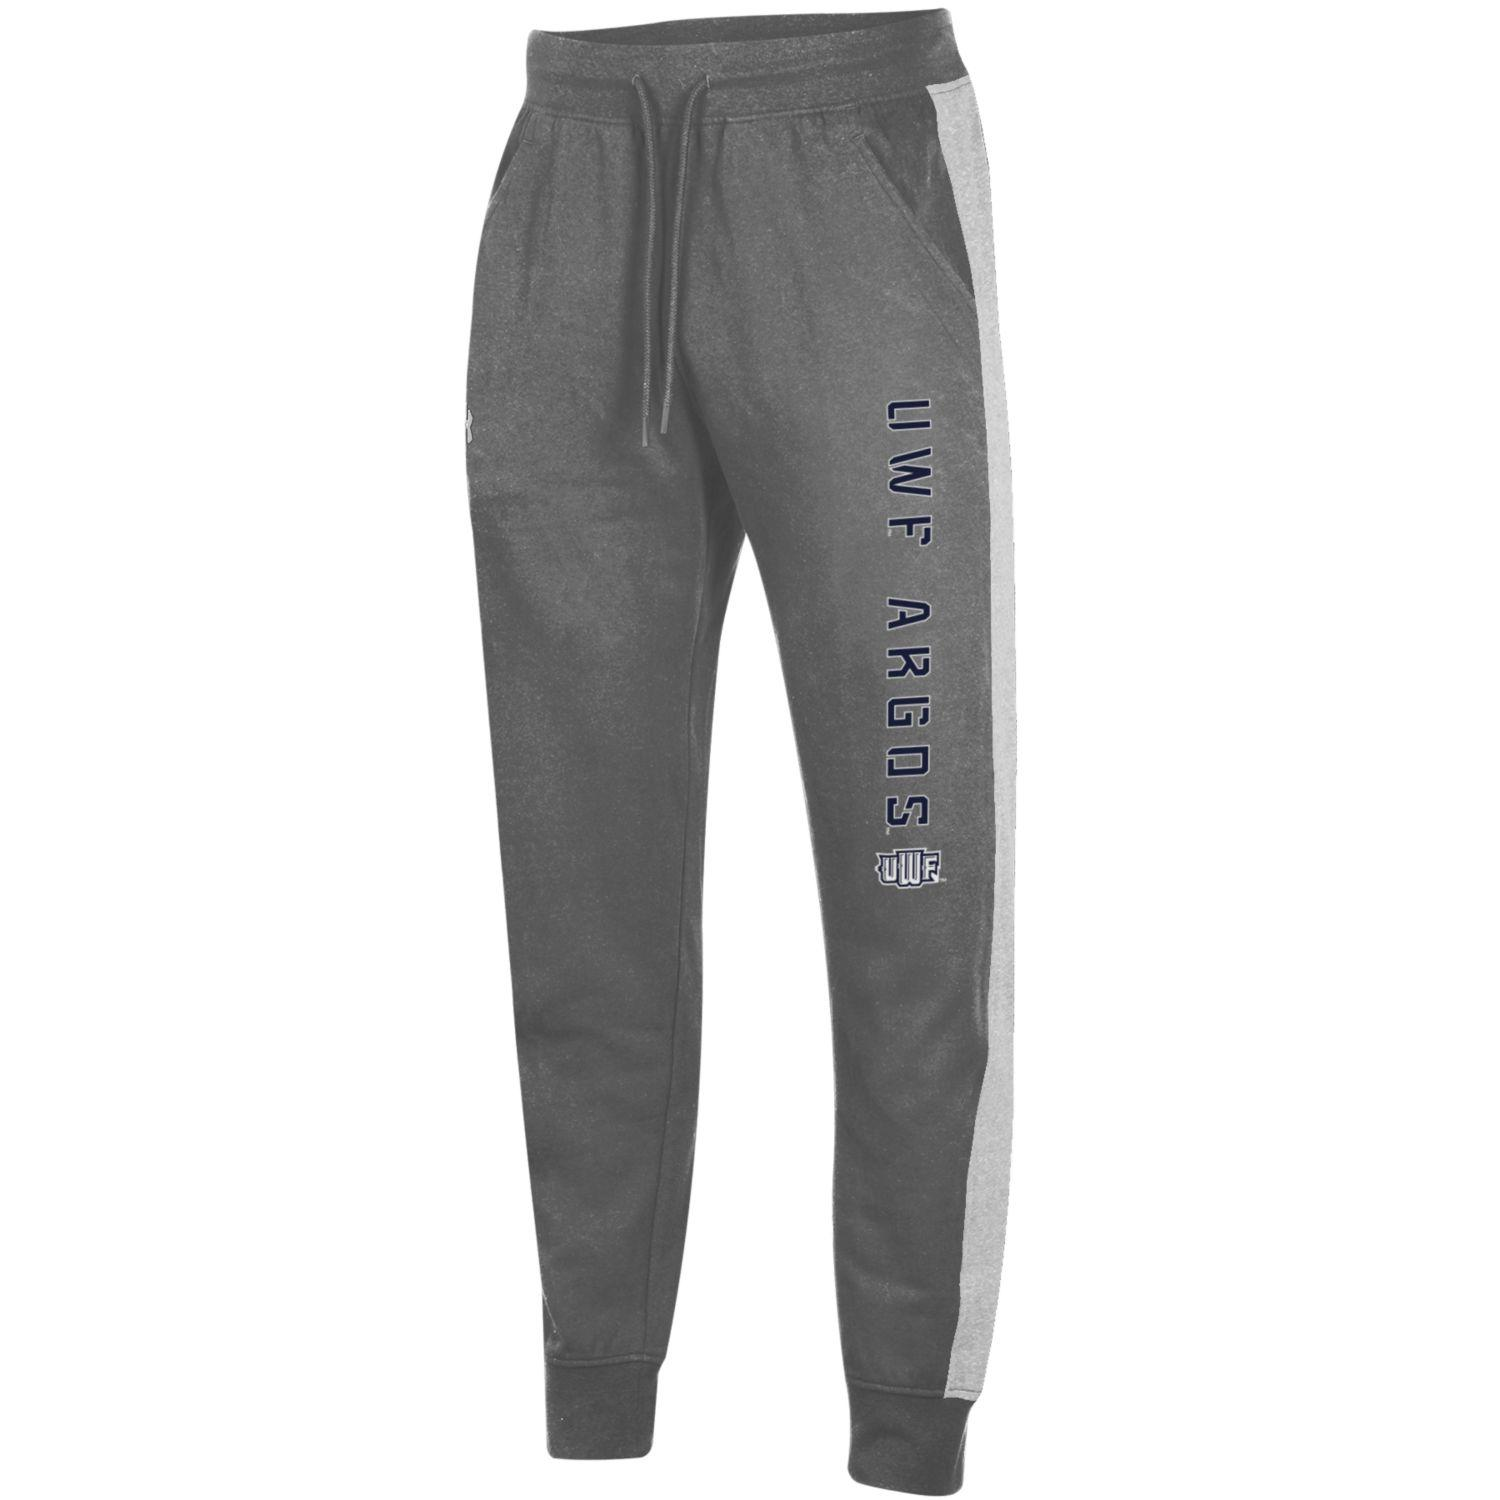 MEN'S TRIBLEND FLEECE JOGGER